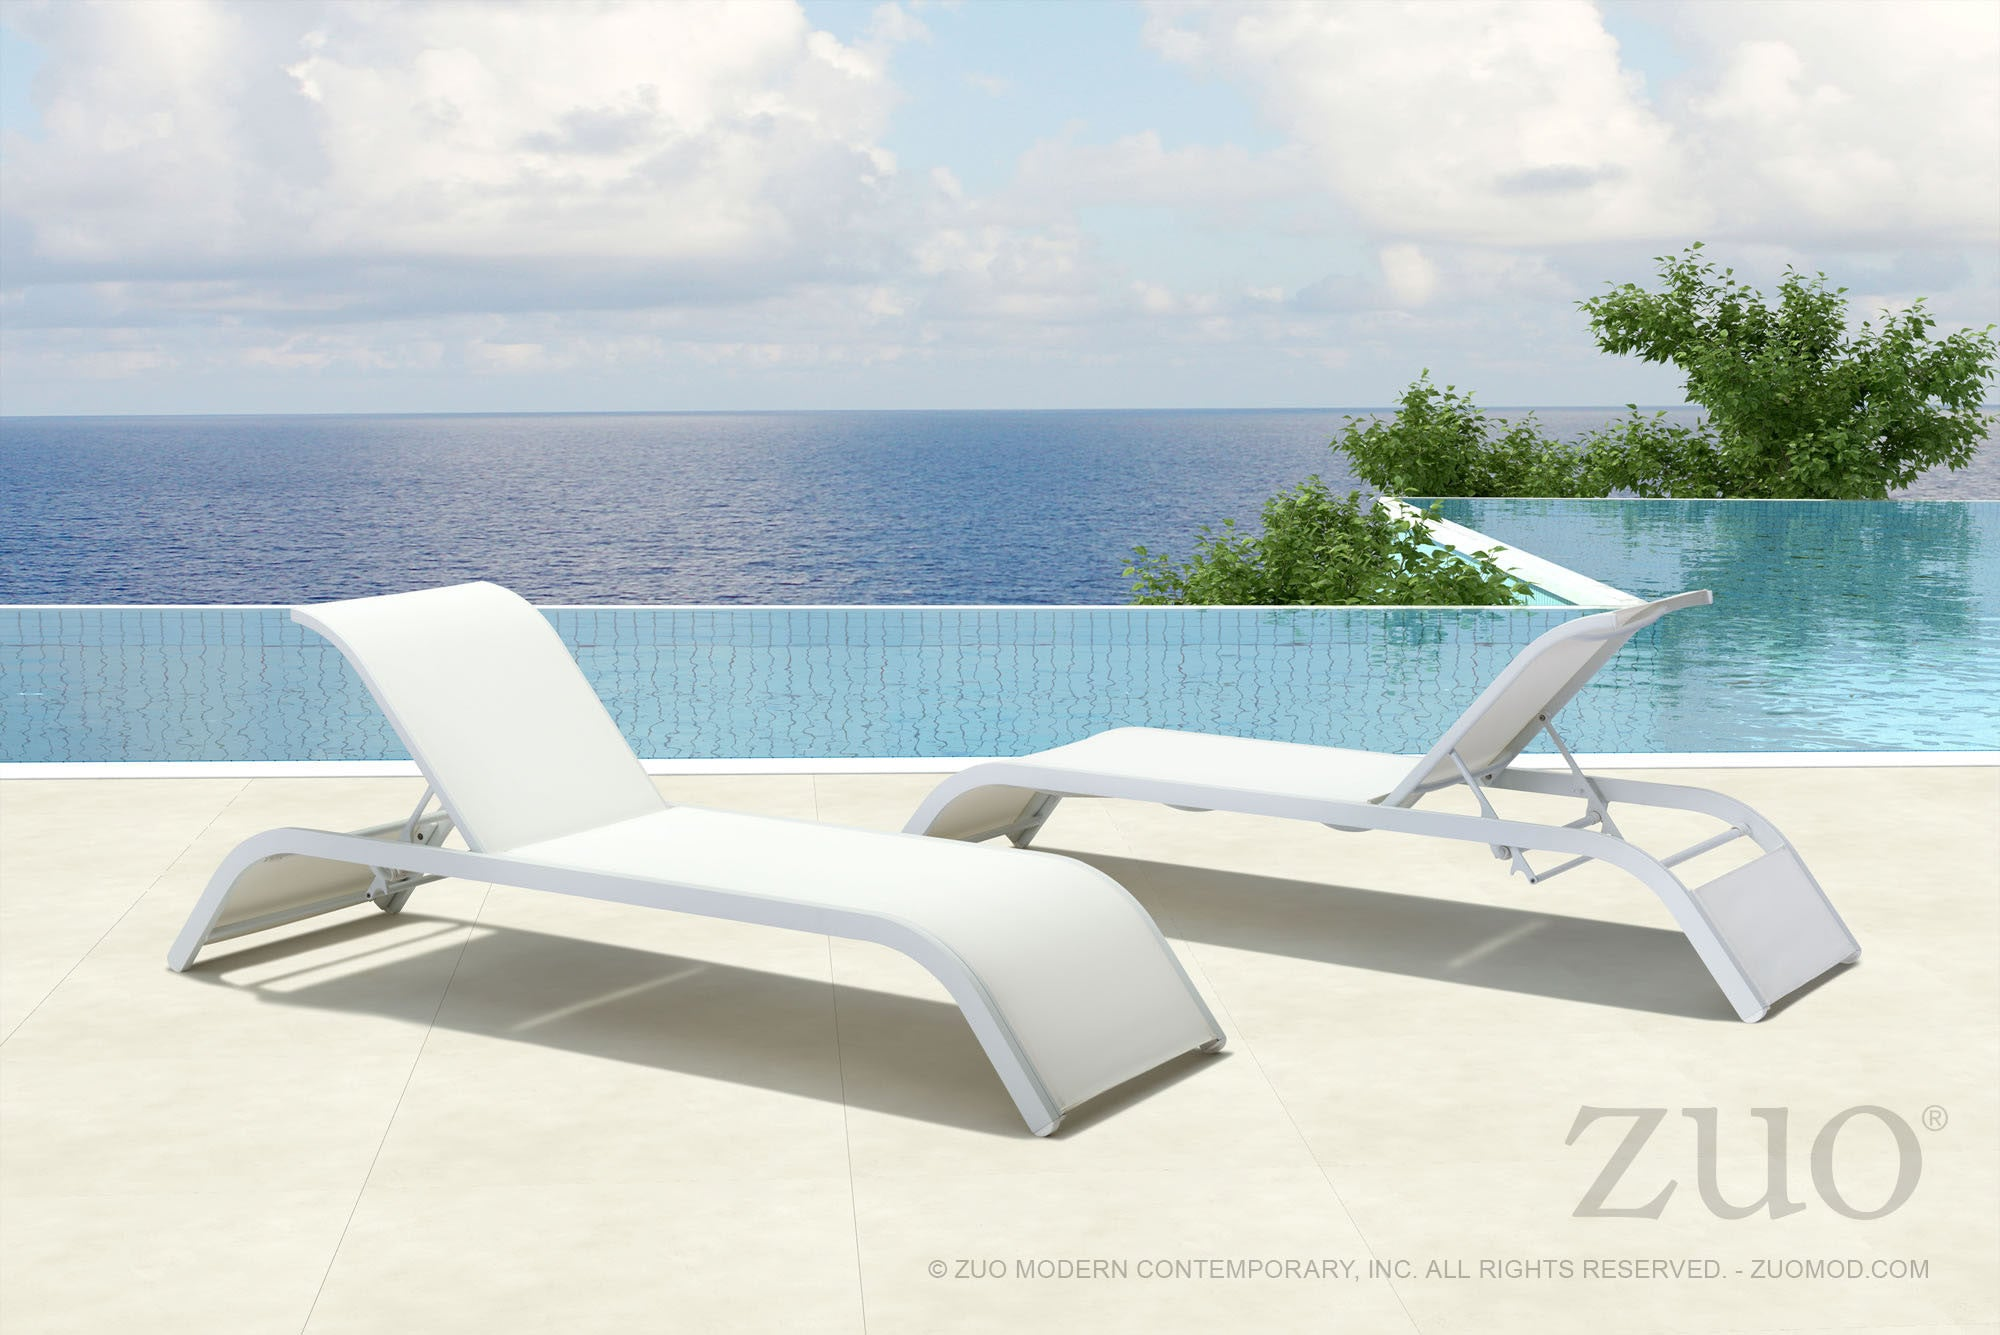 chaise sunbrella luxury exterior cushions black white outdoor lounge furniture for alluring